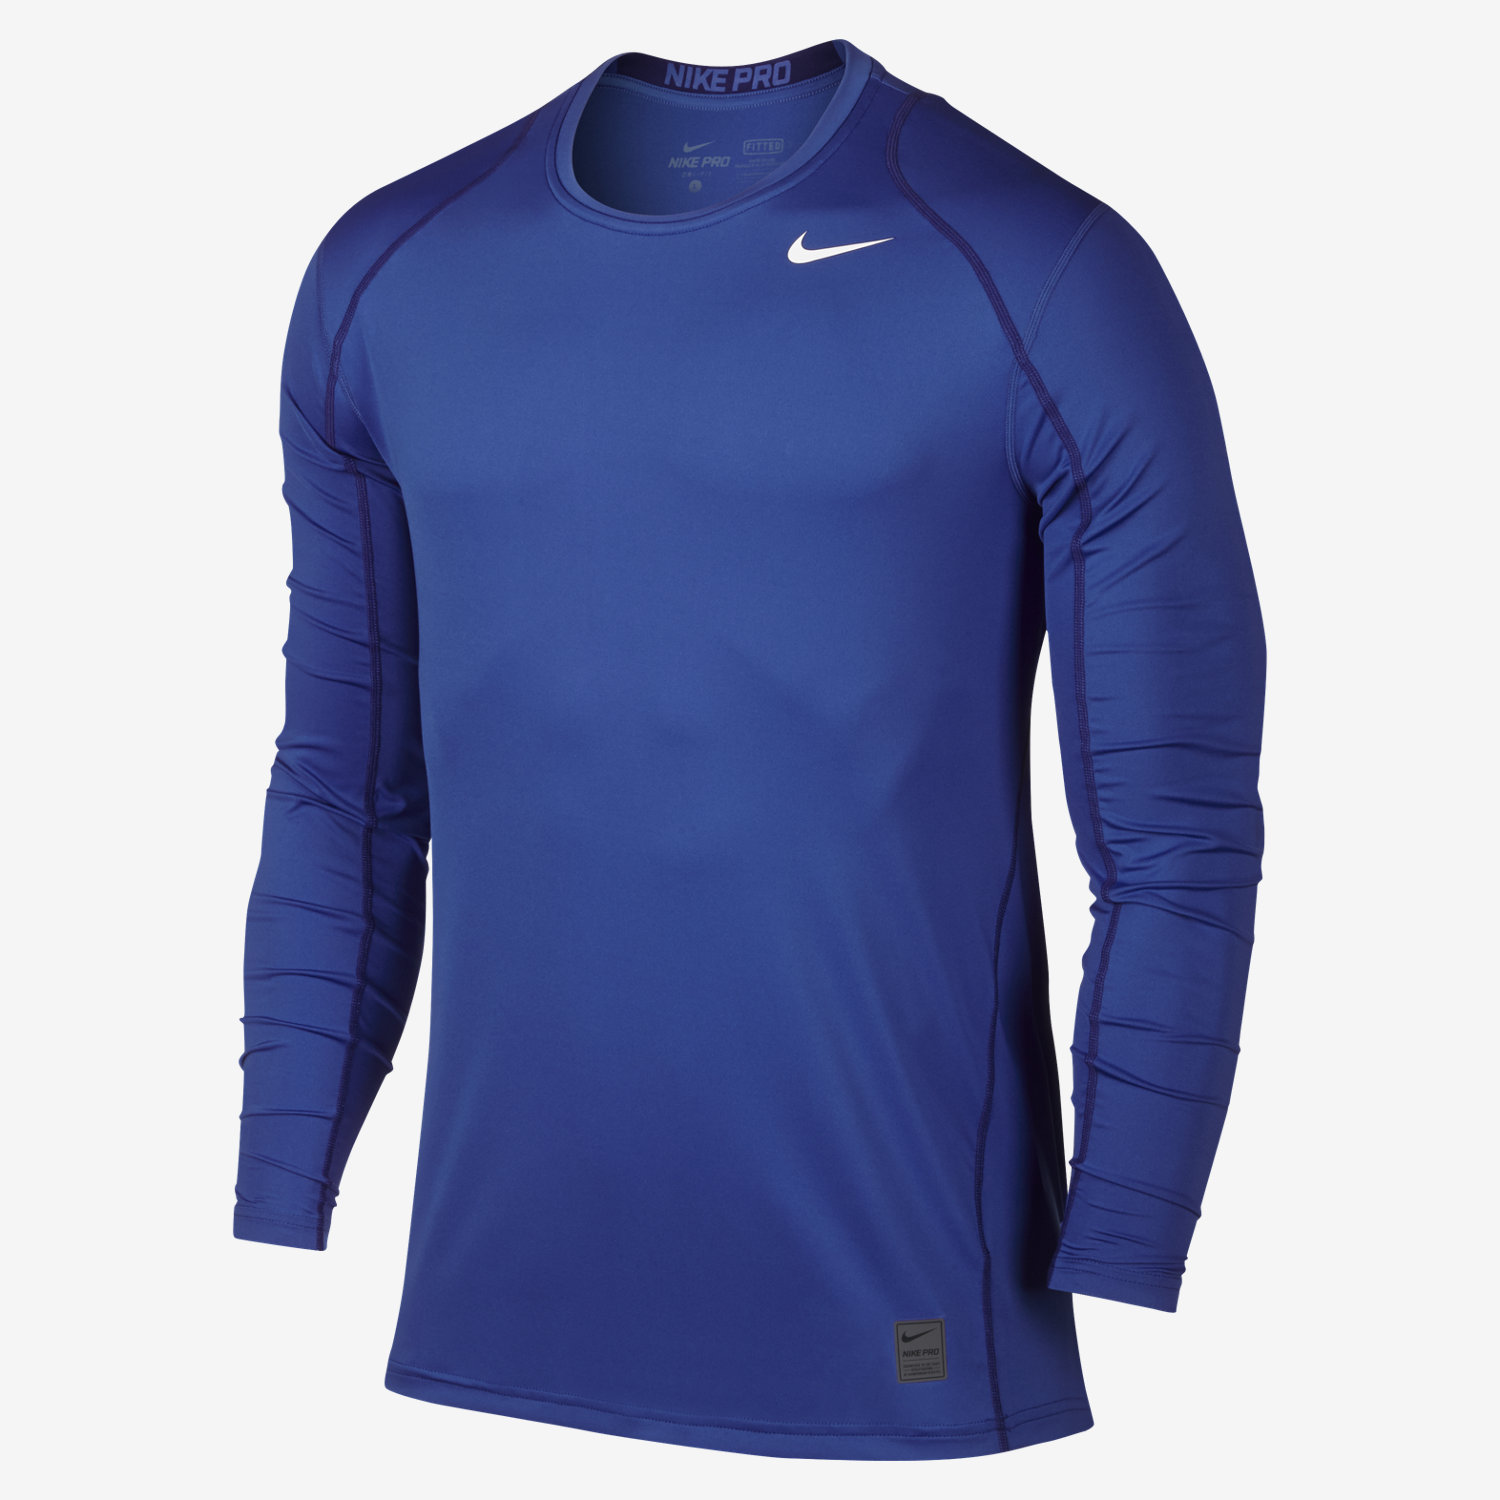 NIKE PRO COOL FITTED